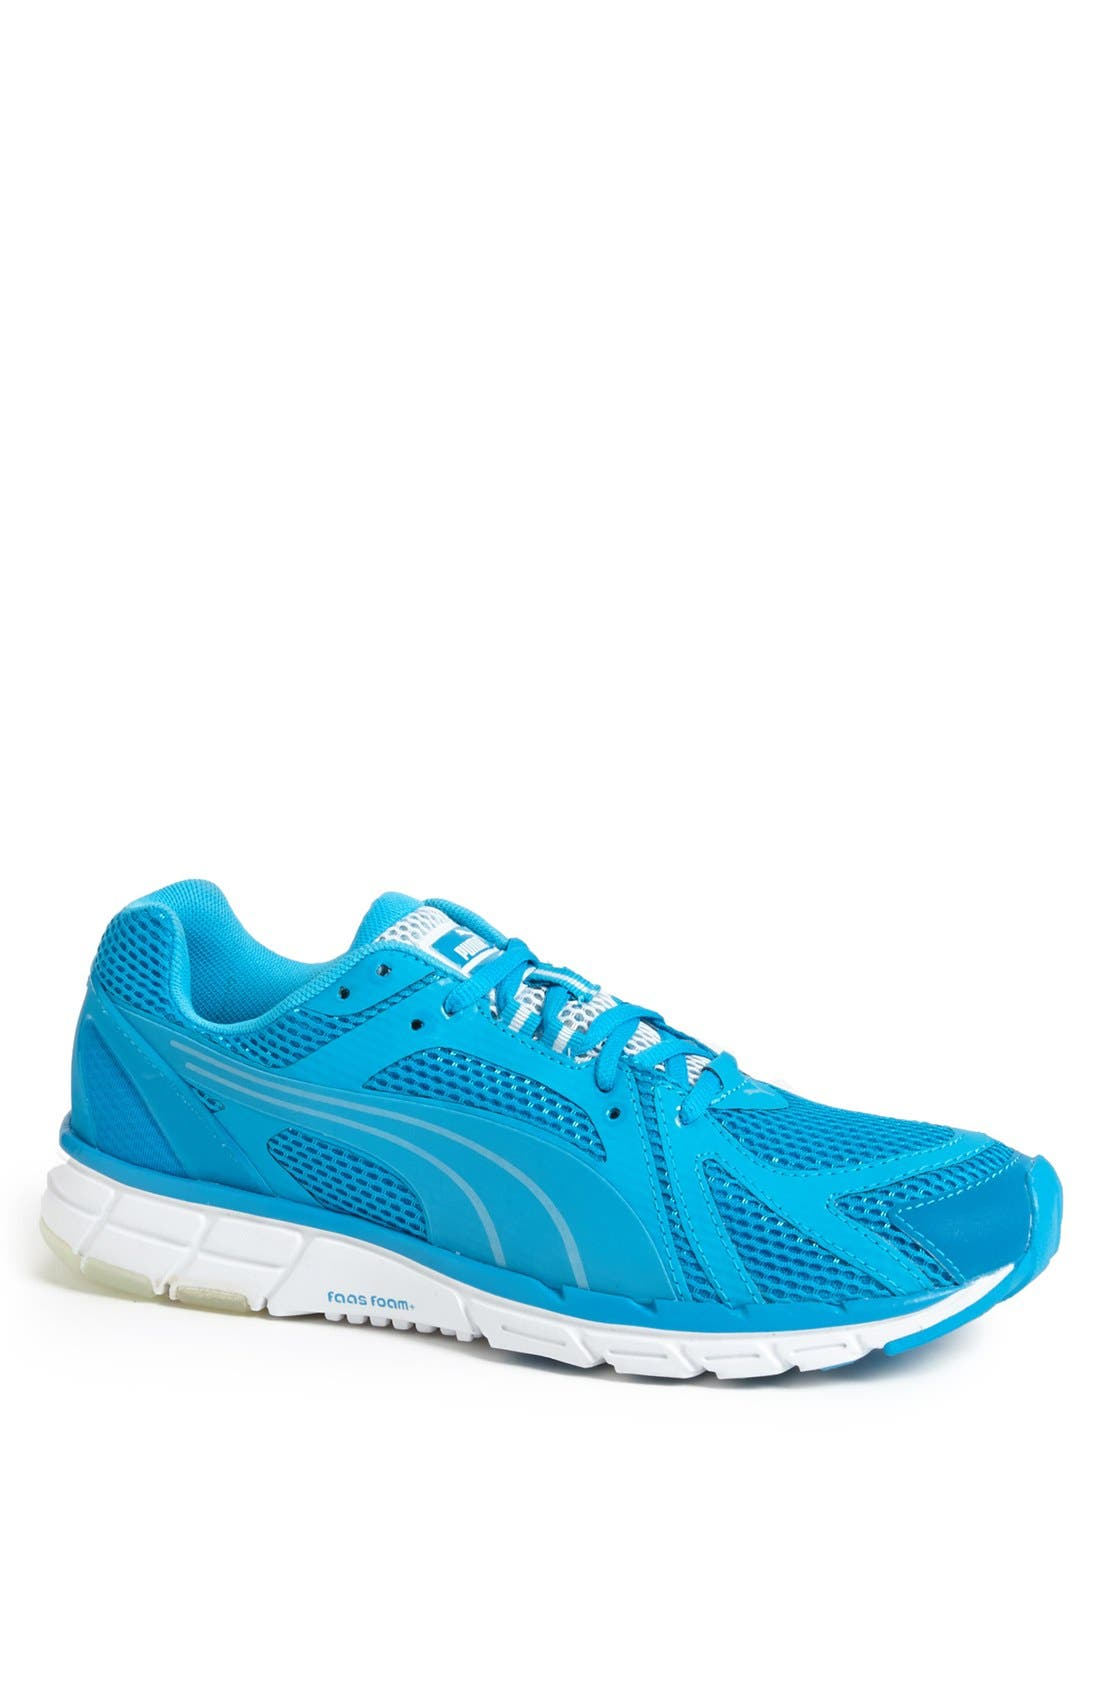 Main Image - PUMA 'Faas 600 S Glow' Running Shoe (Men)